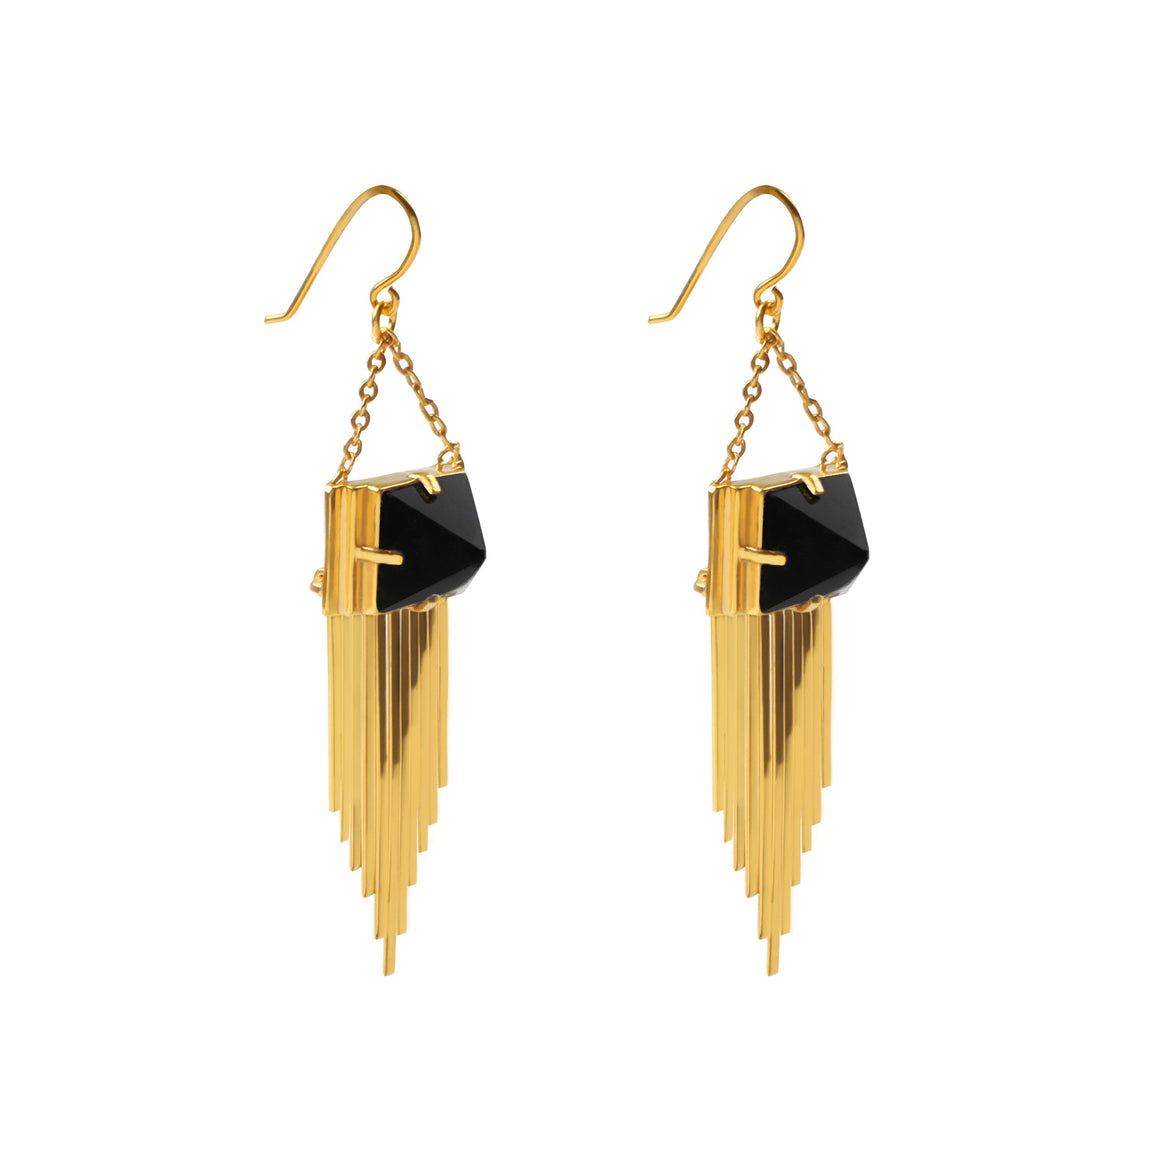 24K GOLD DANGLE EARRINGS WITH PYRAMID ONYX STONE